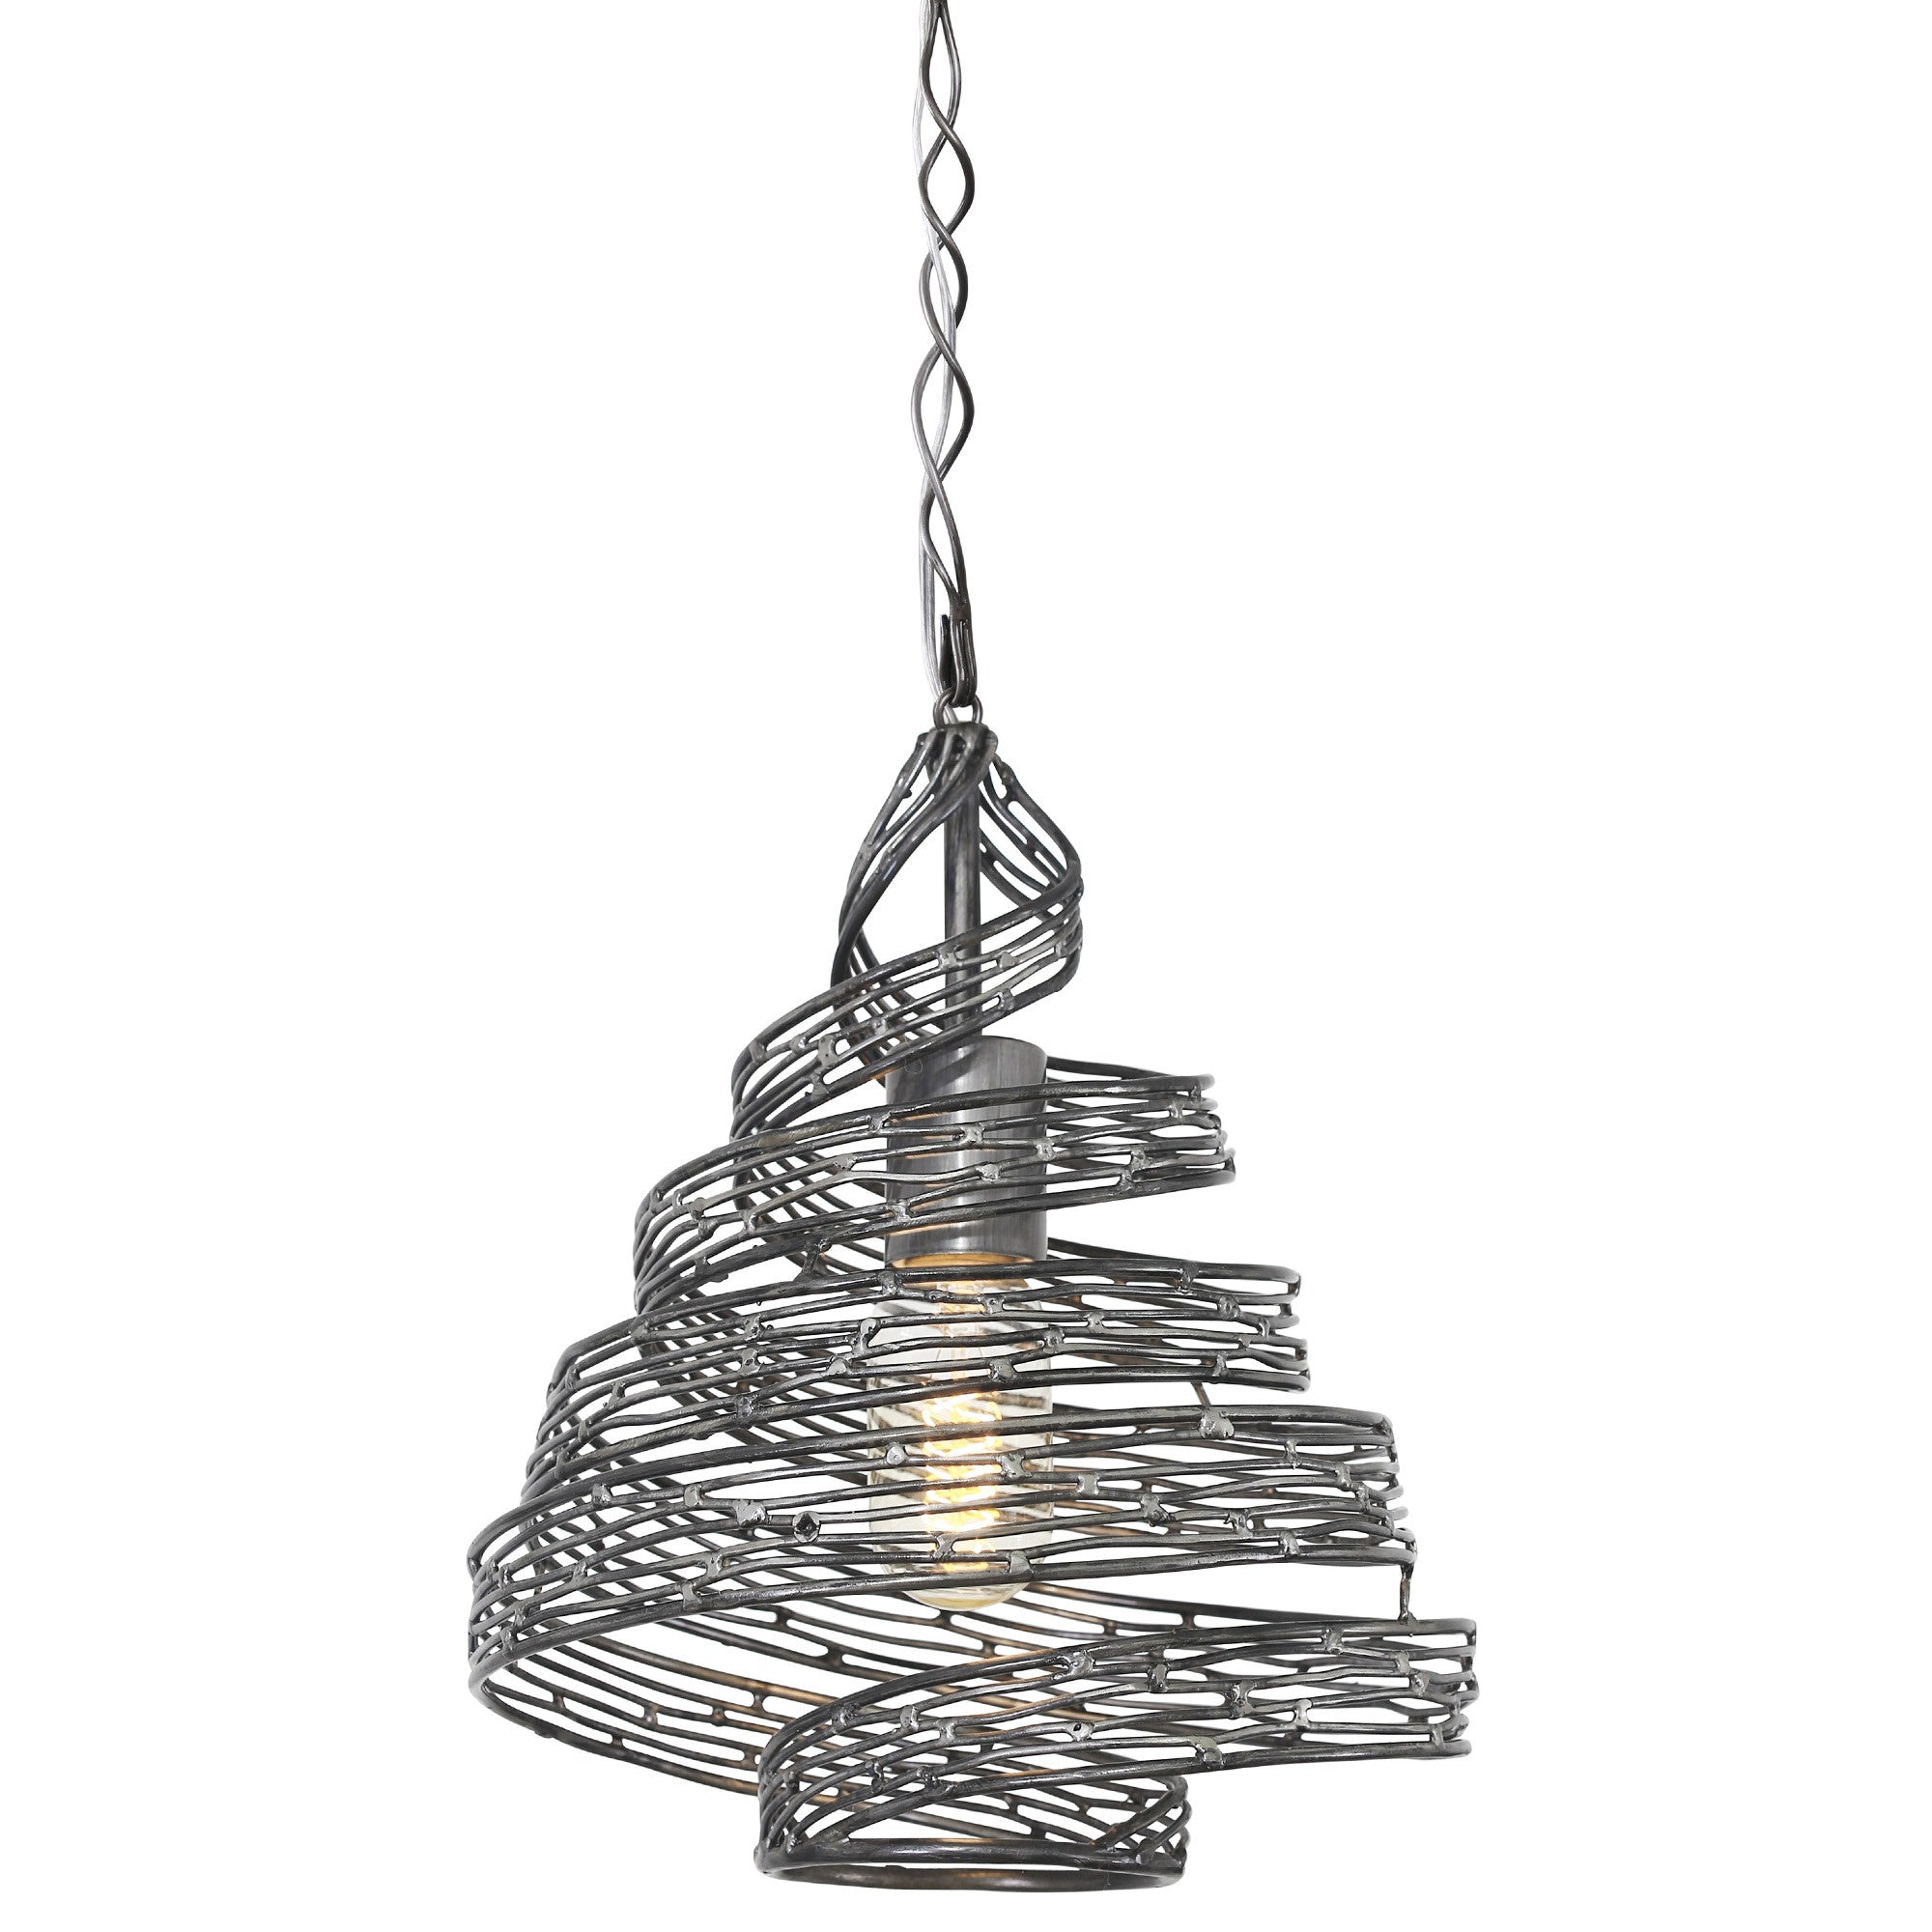 Flow 240P01SL 1-Lt Twist Mini Pendant - Steel